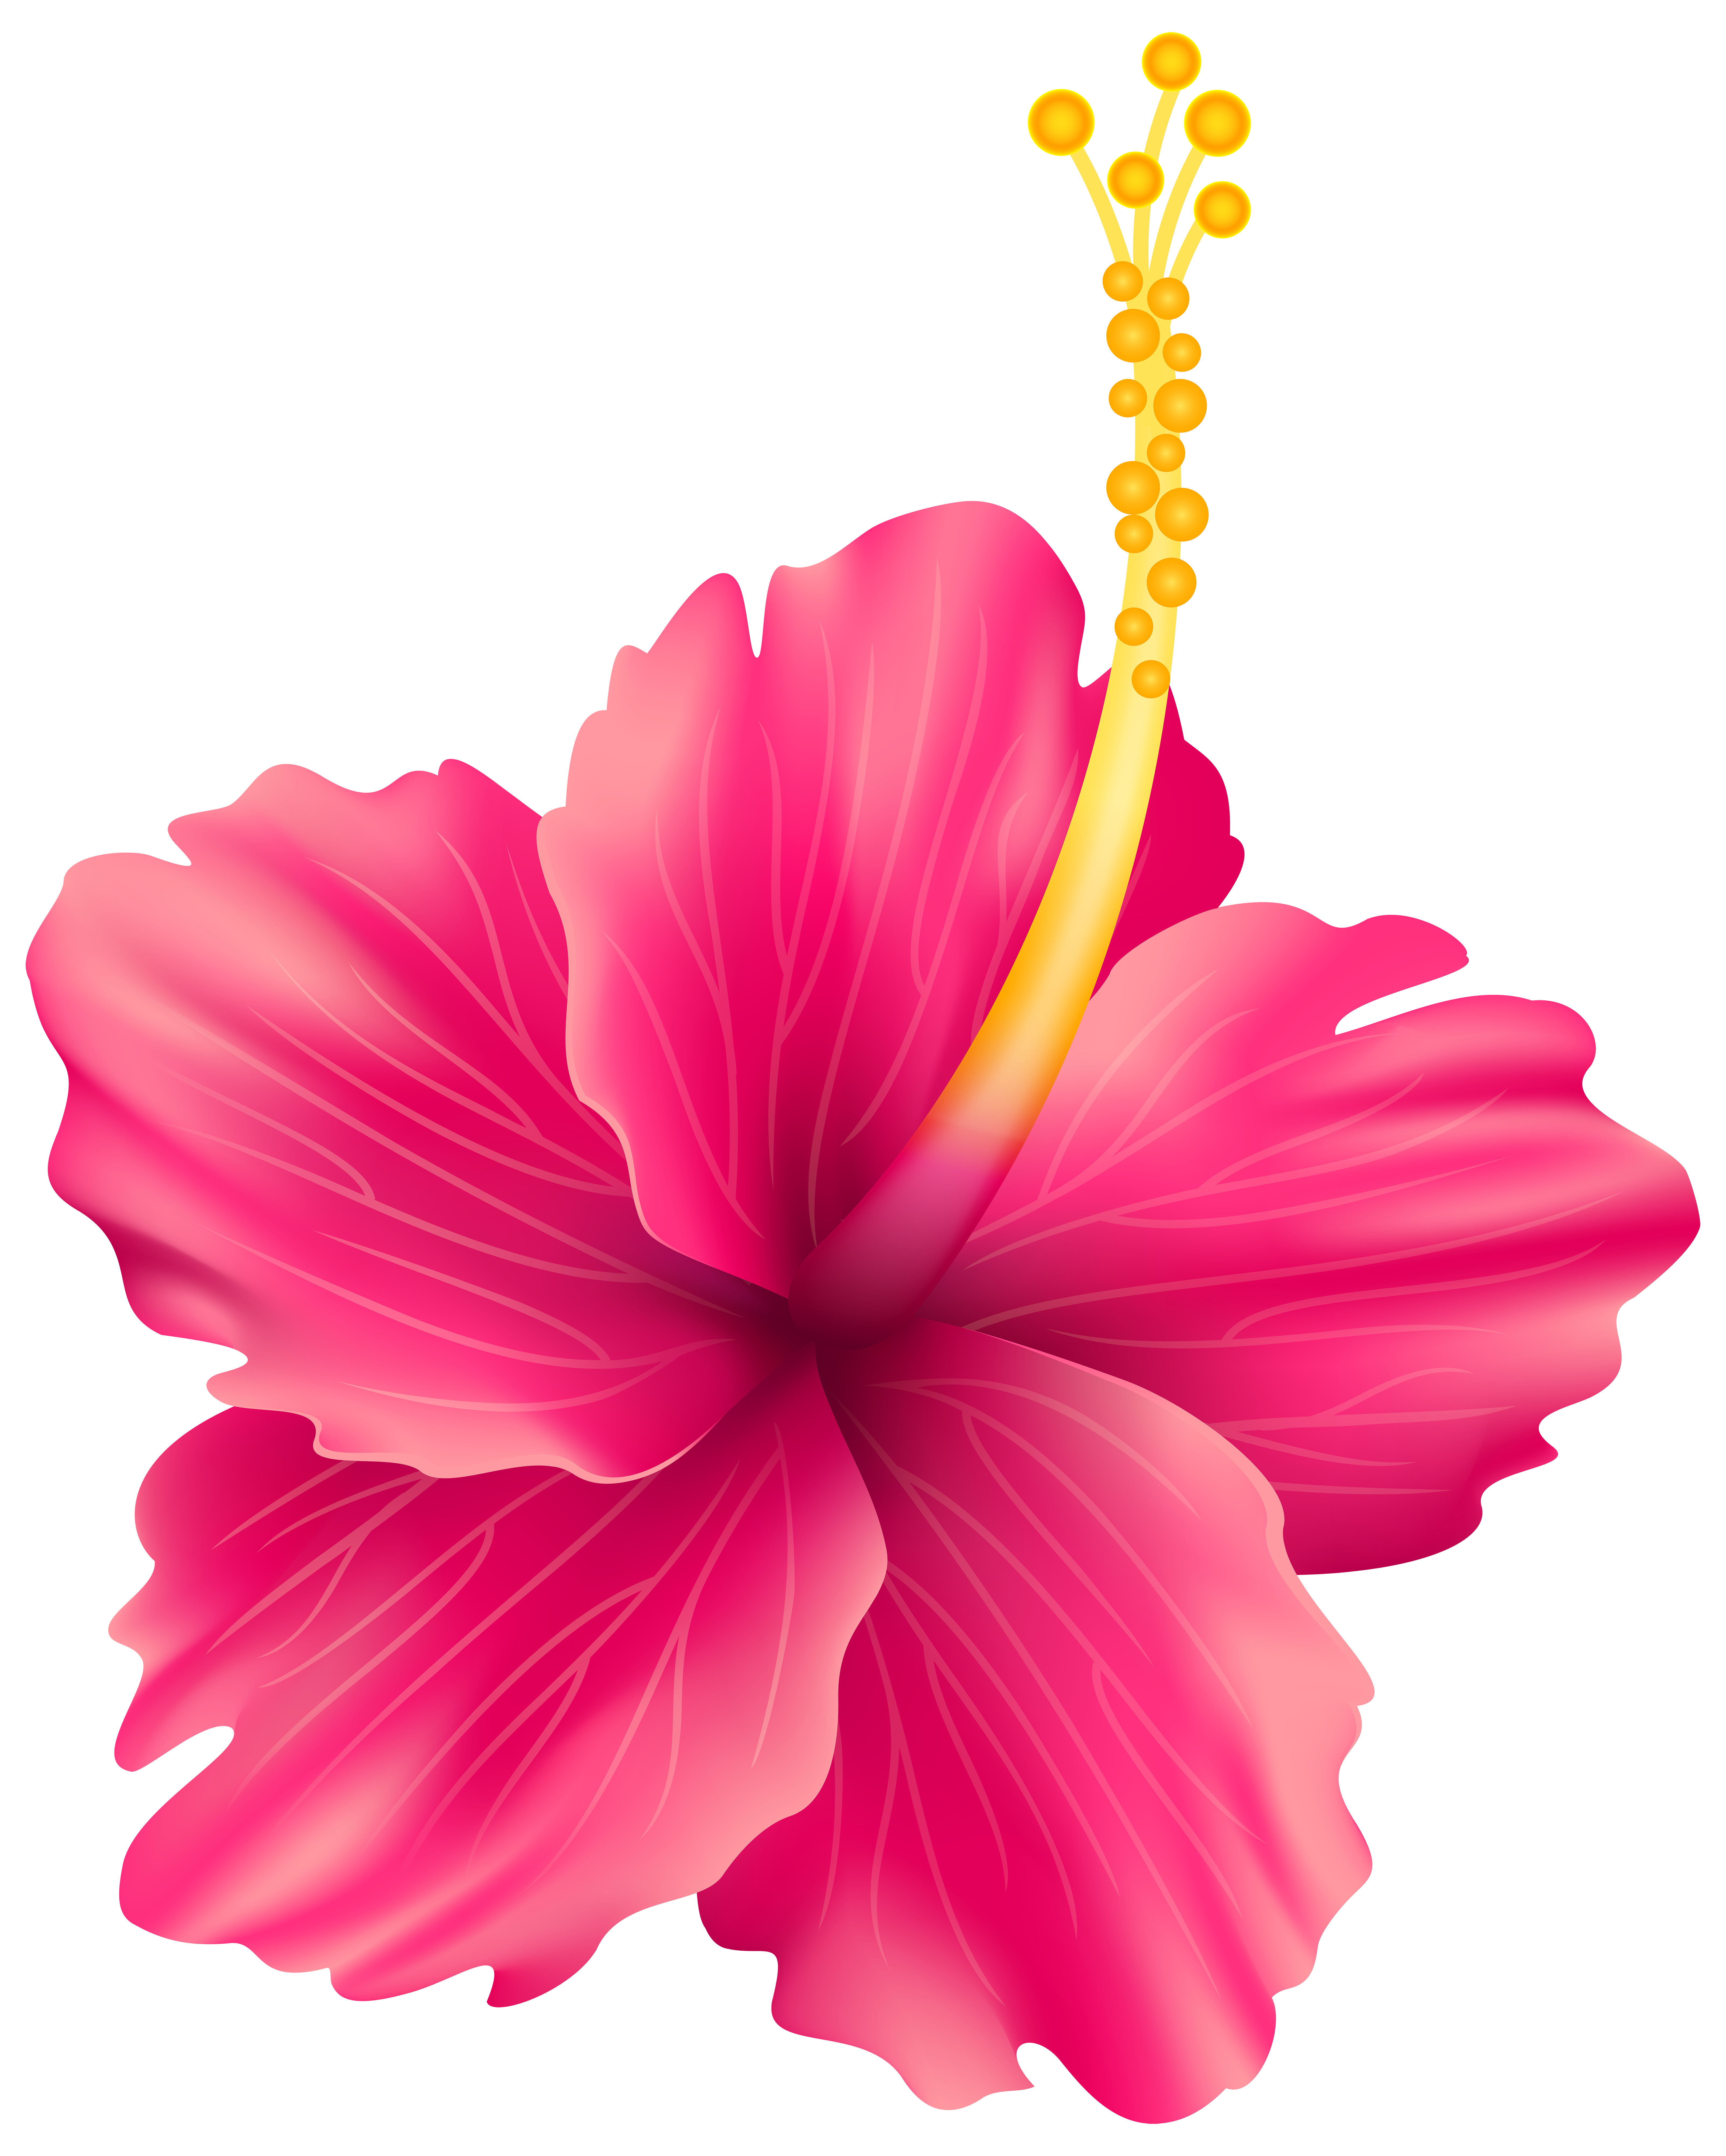 Flowers png transparent background. Pink exotic flower clip